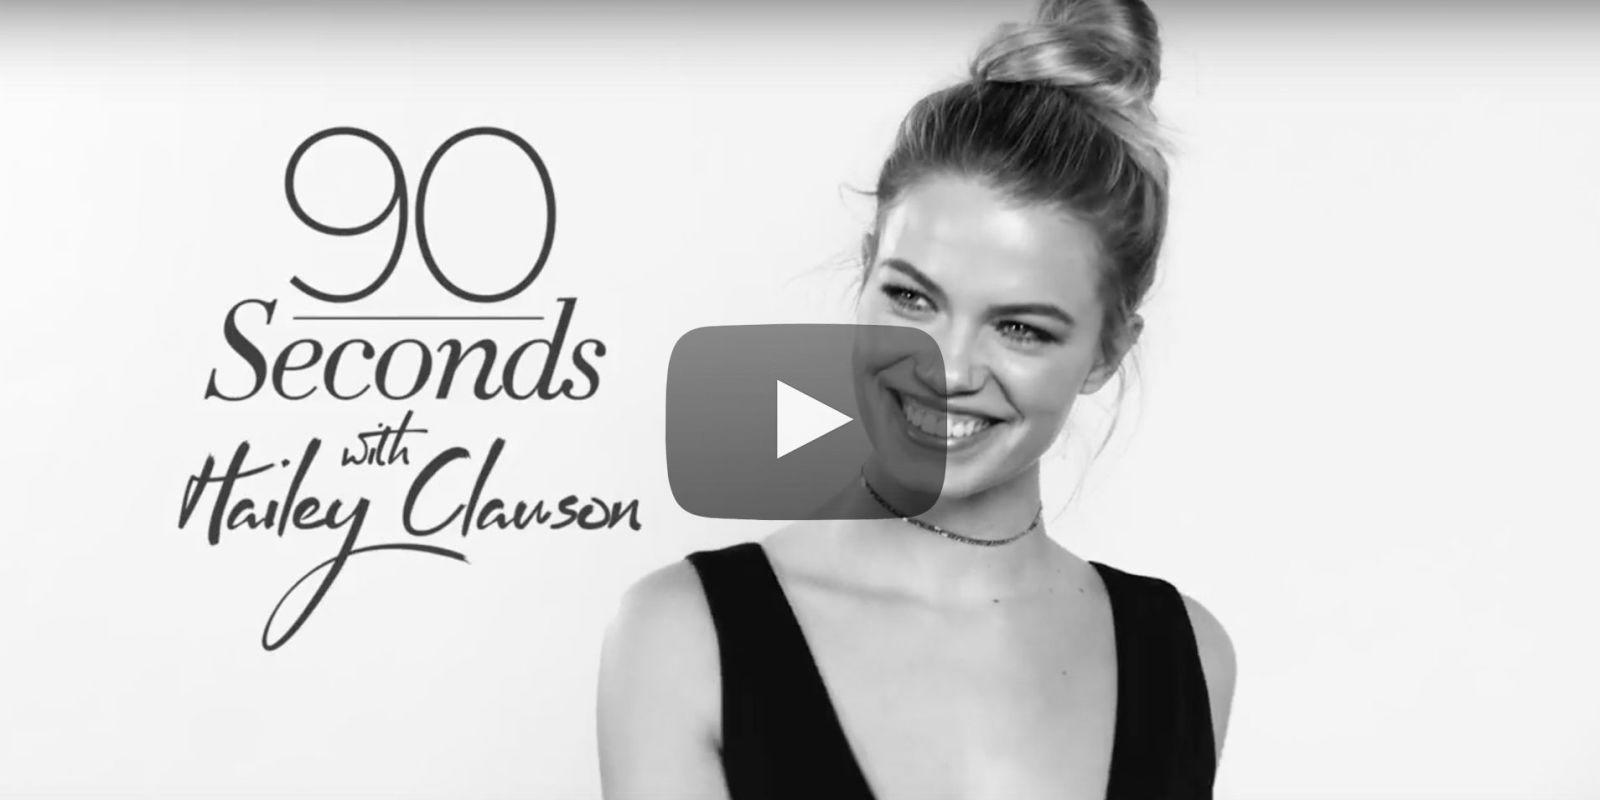 Watch: 90 Seconds with Hailey Clauson